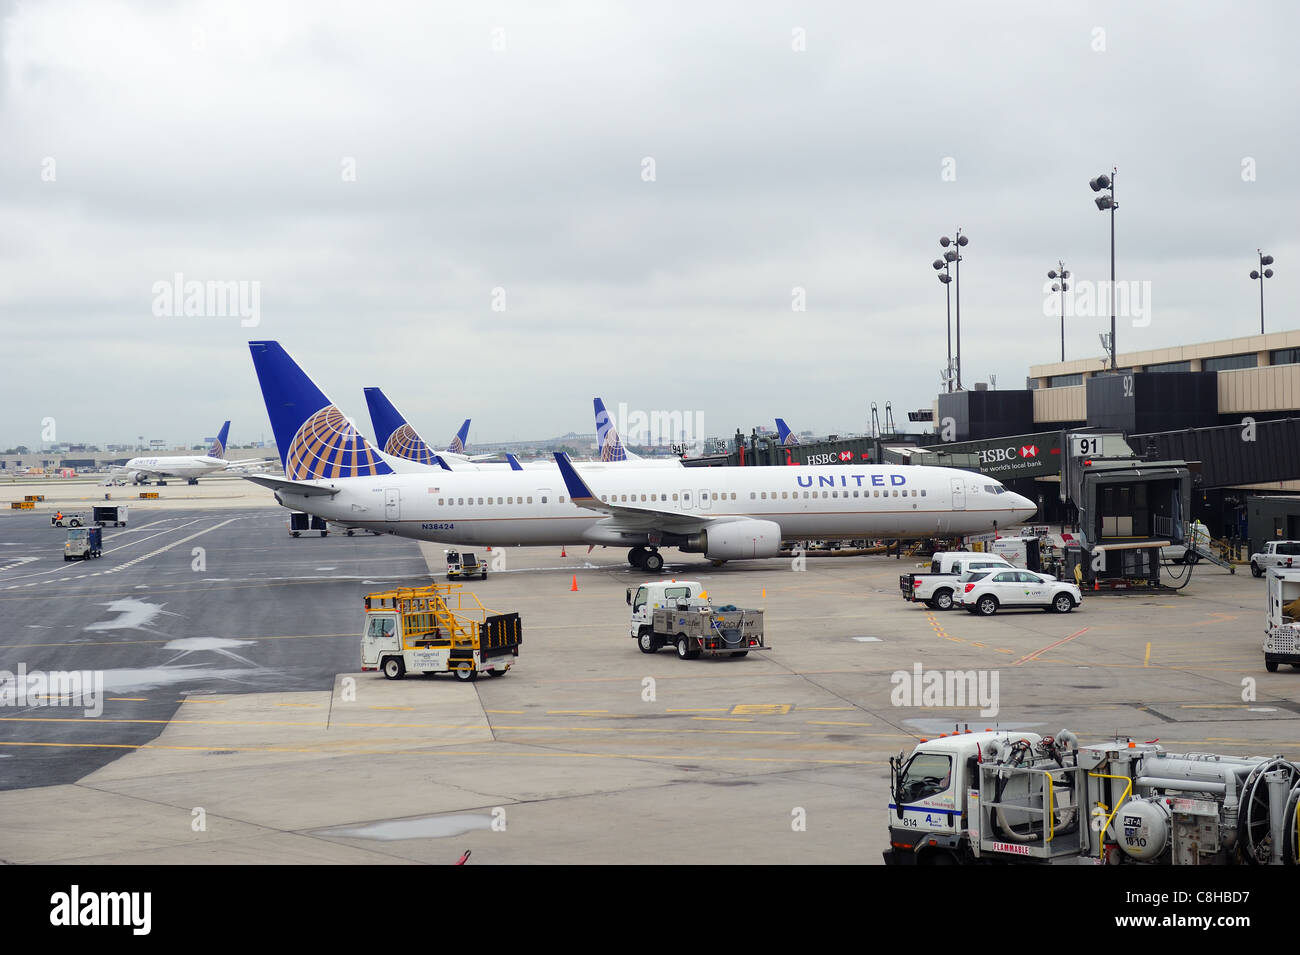 United Airlines merged with Continental in 2010 as now the world's largest airline. - Stock Image